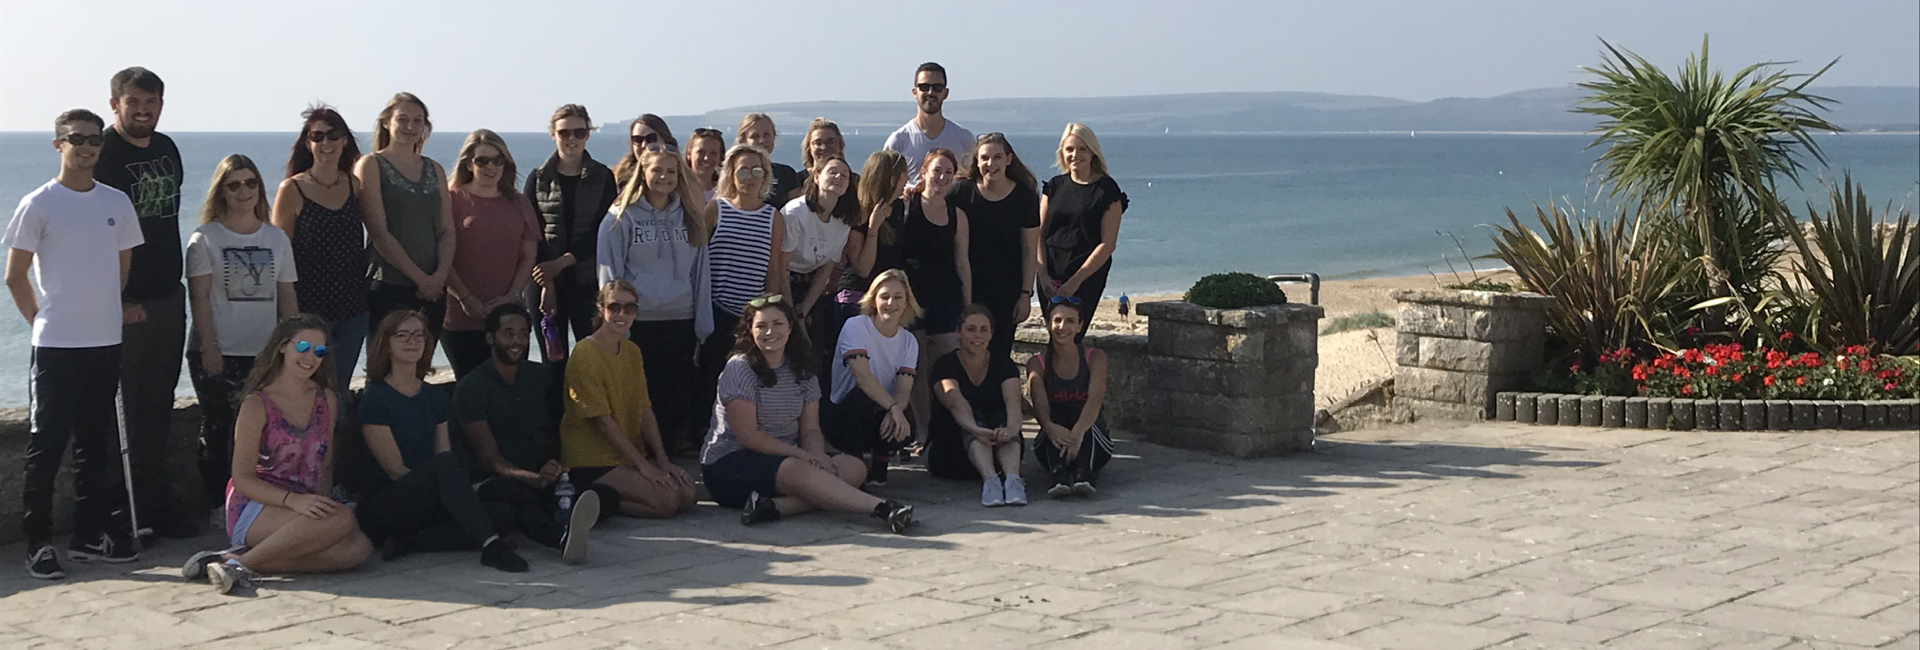 Poole SCITT 2018 Trainees